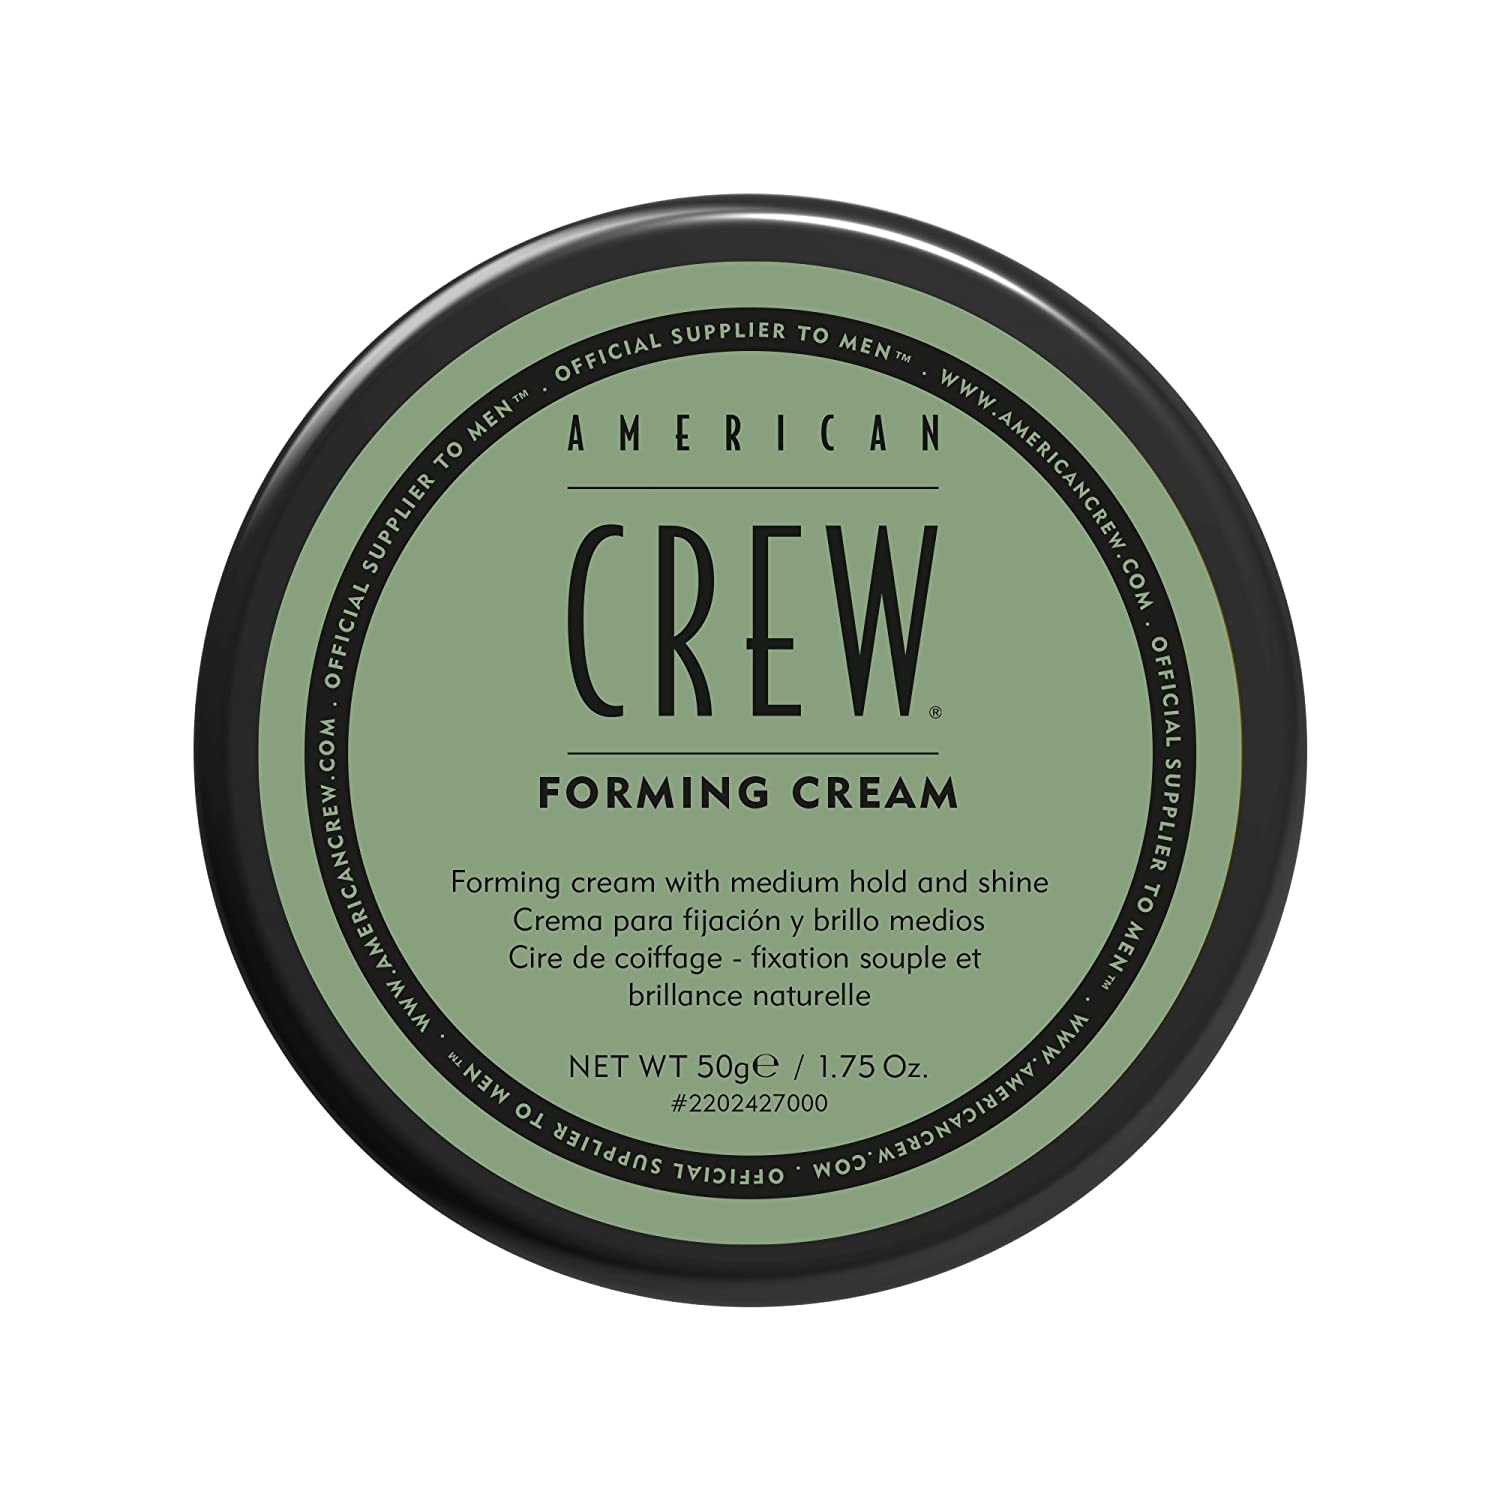 American Crew Forming Cream, 1.75 Ounce 781624780690